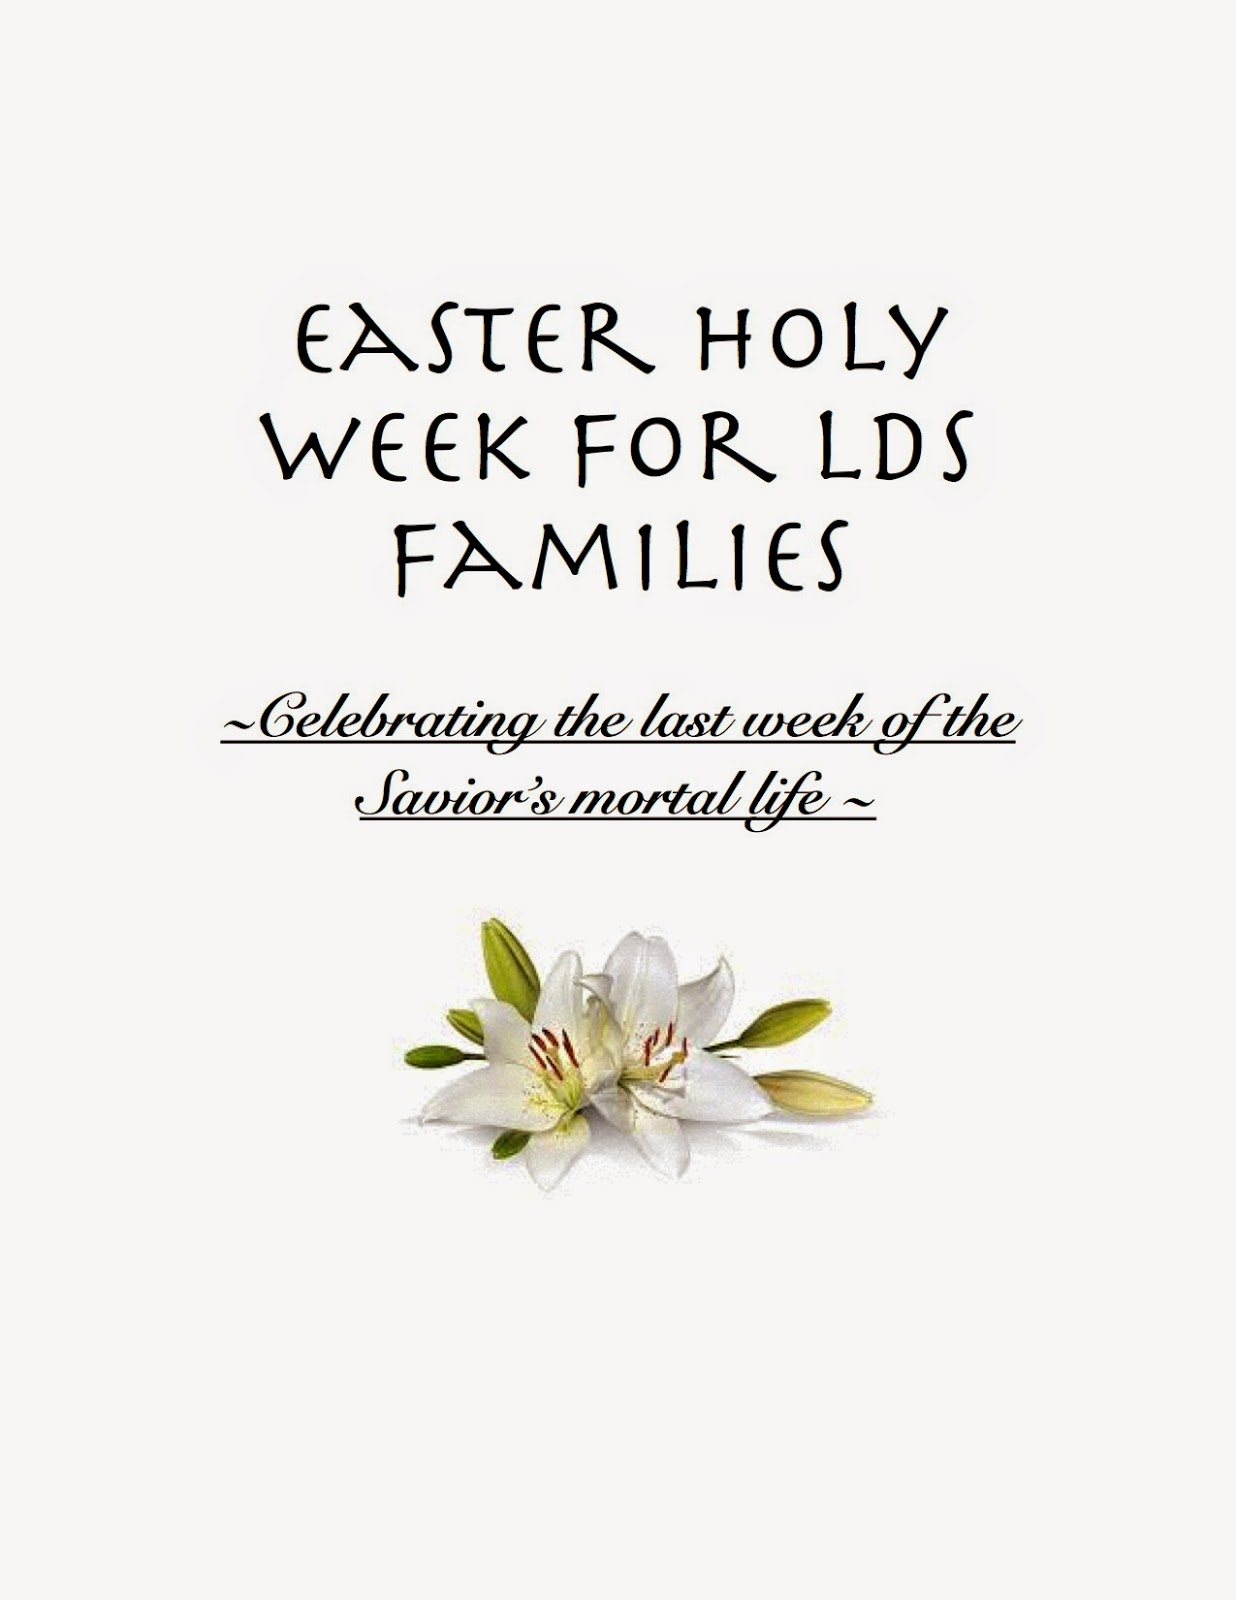 Easter Holy Week for LDS Families